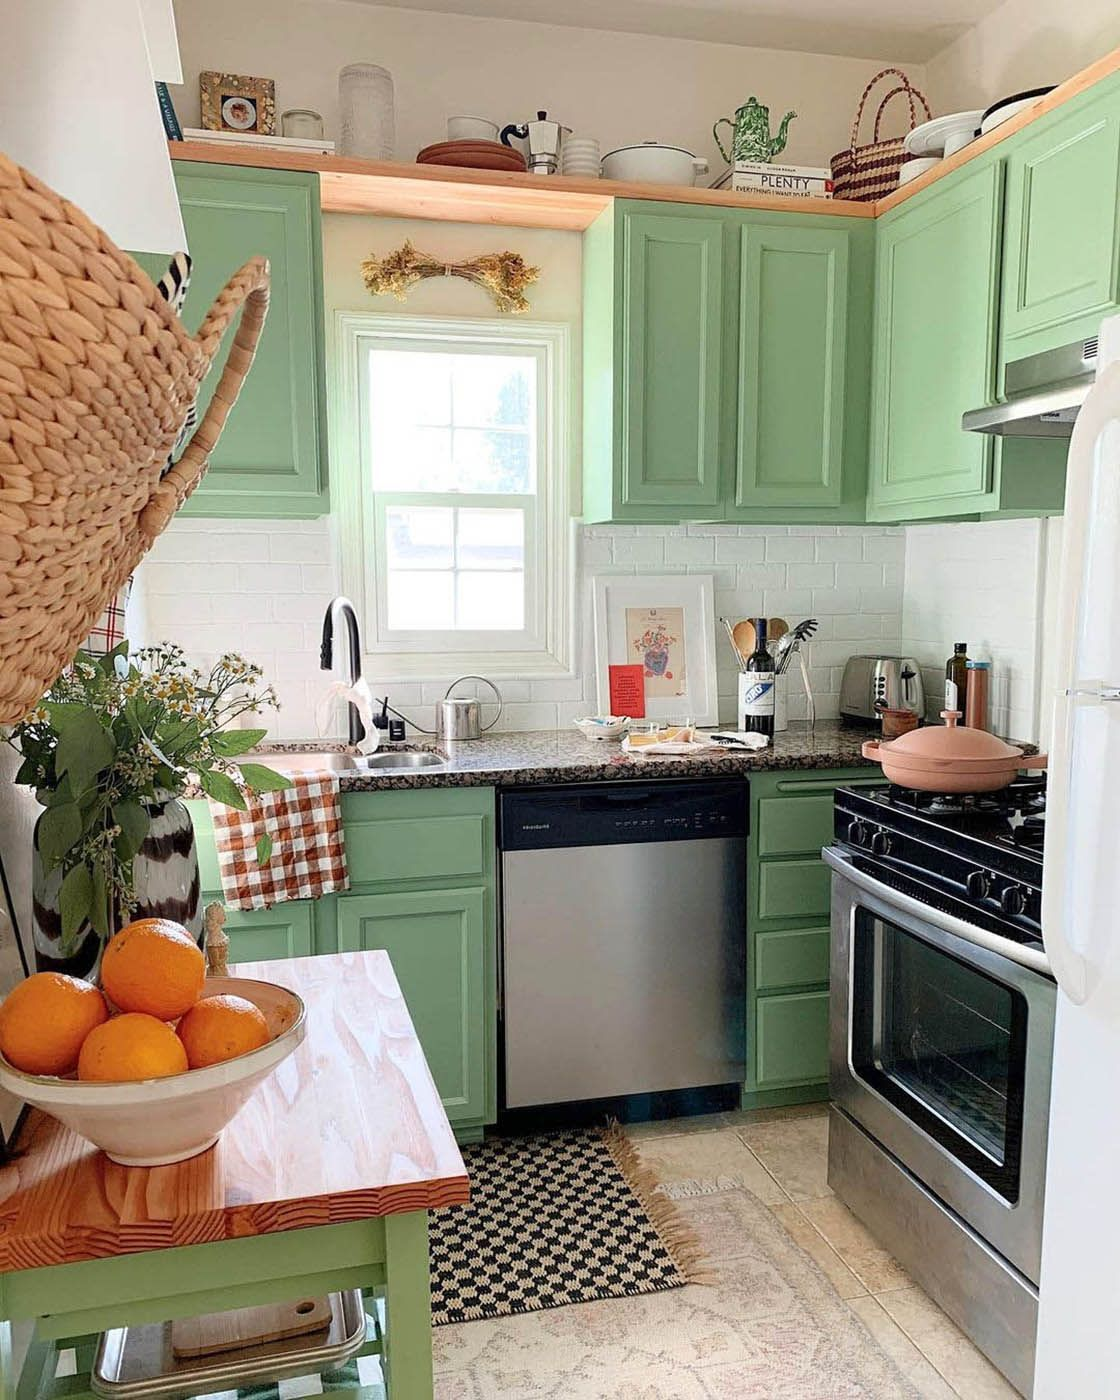 7 Ideas For Kitchen Paint Colors To Try In 2021 Funky Kitchen Kitchen Paint Cottage Kitchen Inspiration Light green kitchen paint